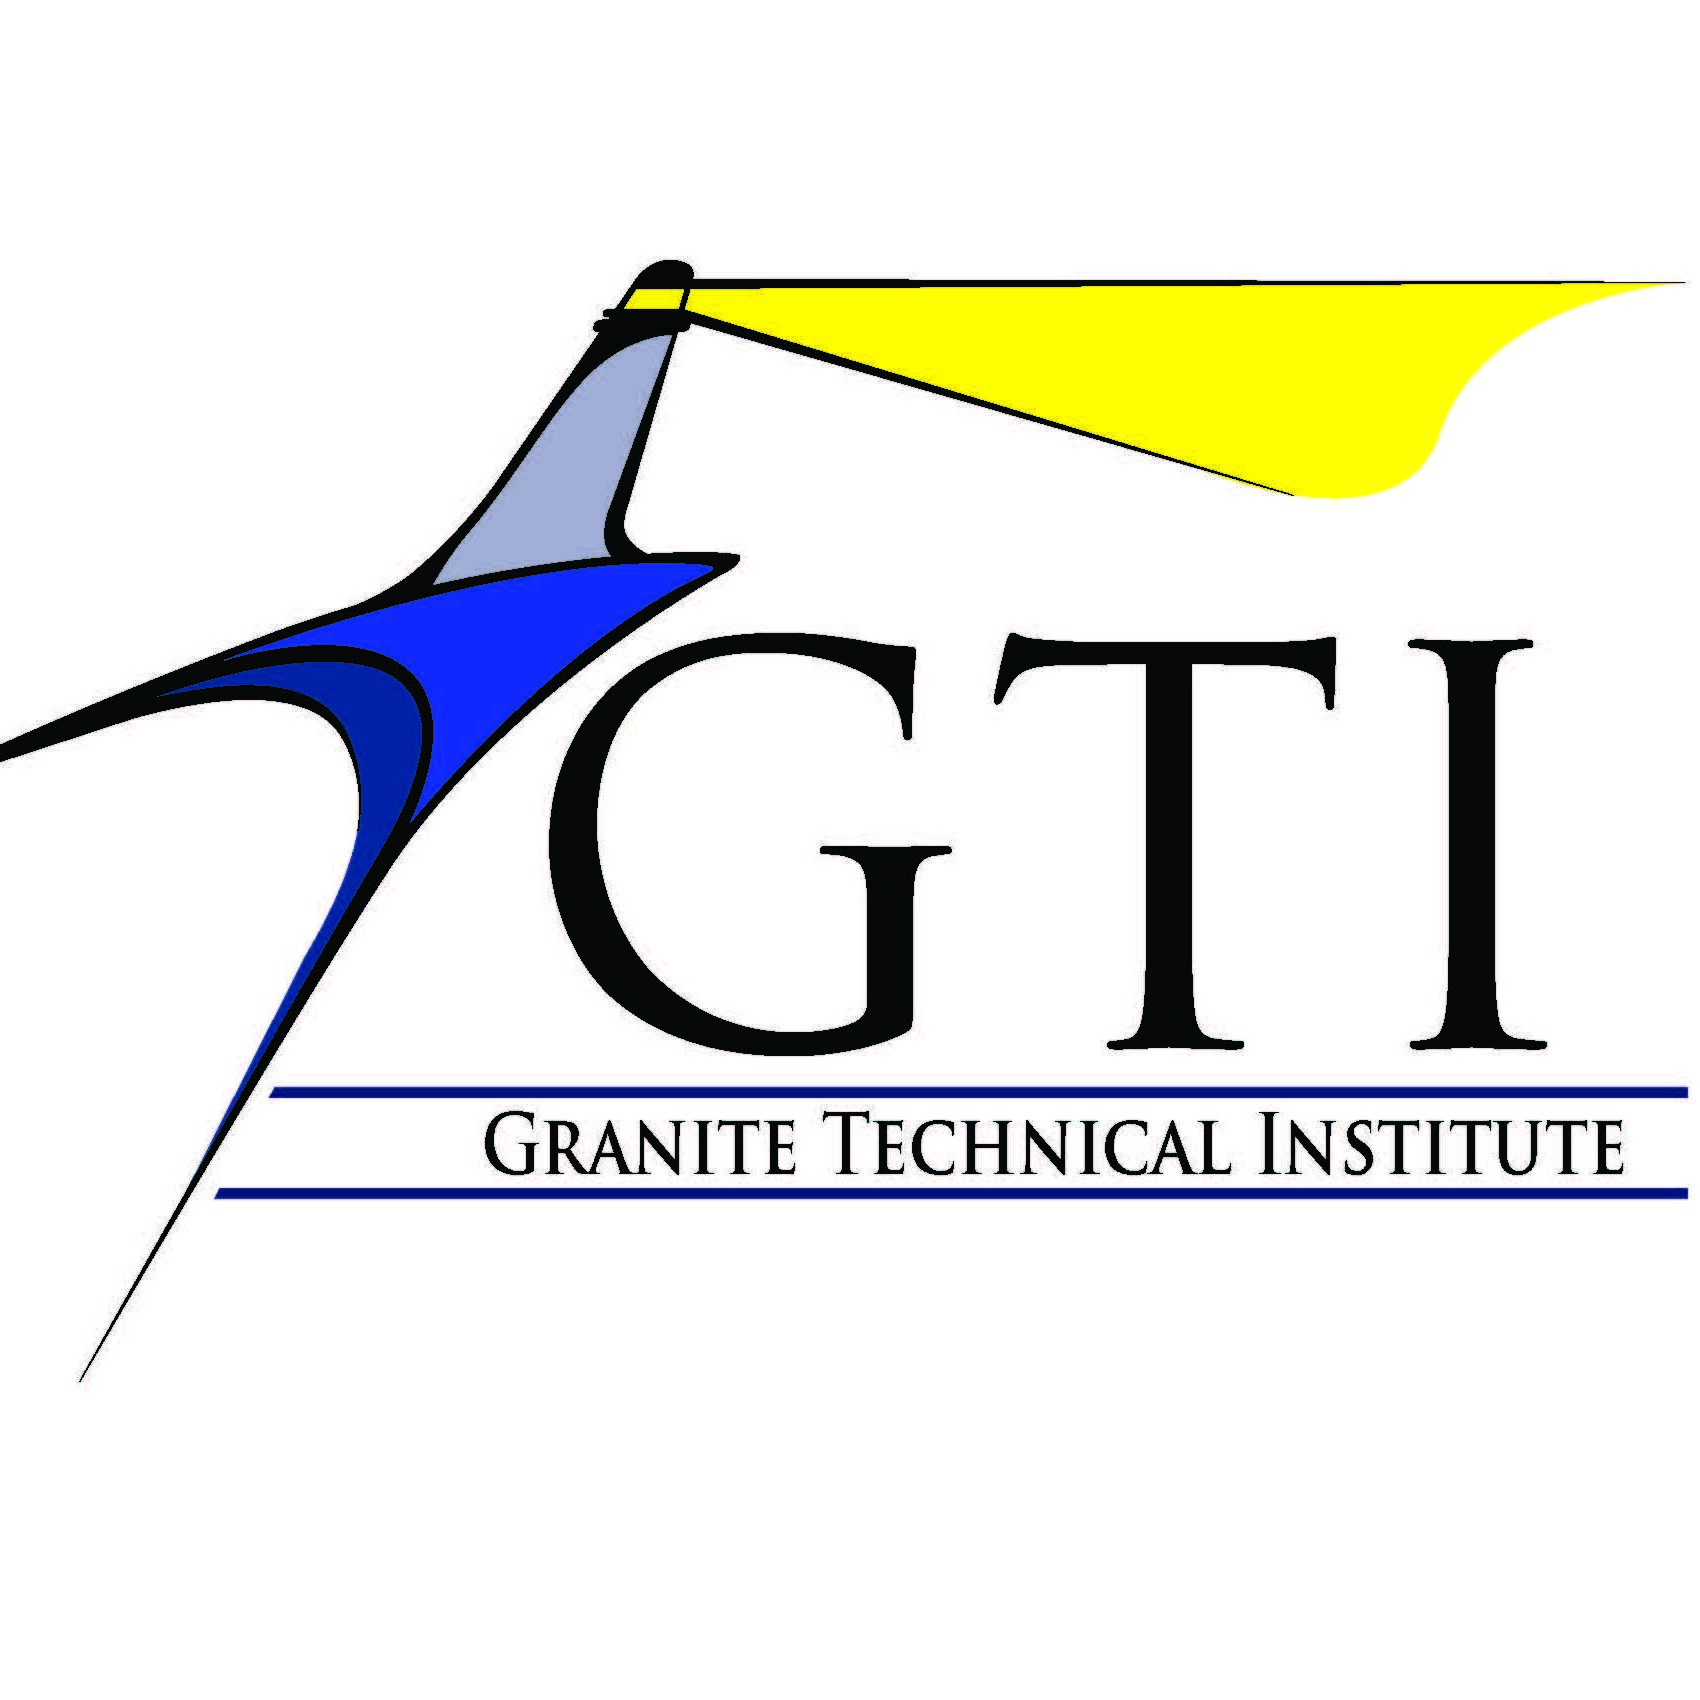 Granite Technical Institute